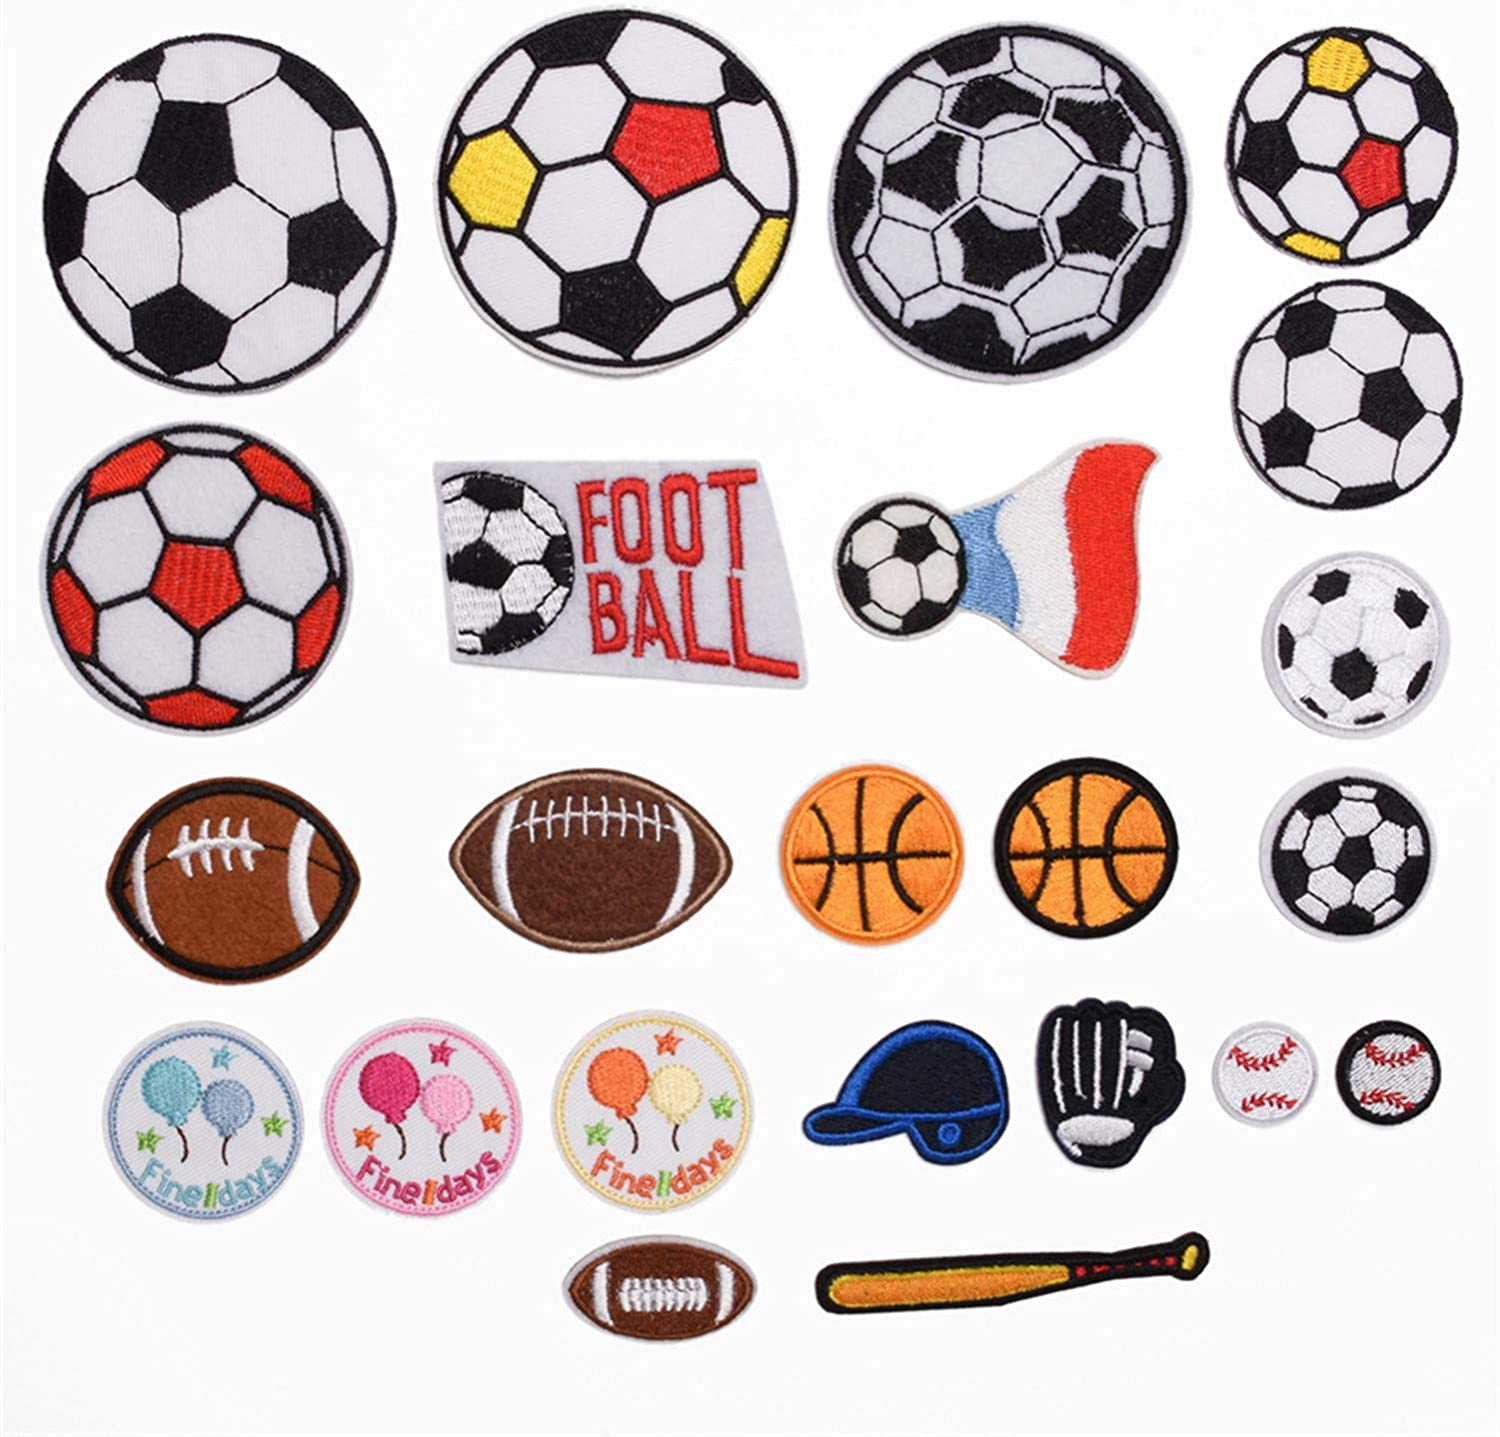 FOOTBALL BALL SPORT DECORATE JACKET BAG Embroidered Iron on Patch Free Postage